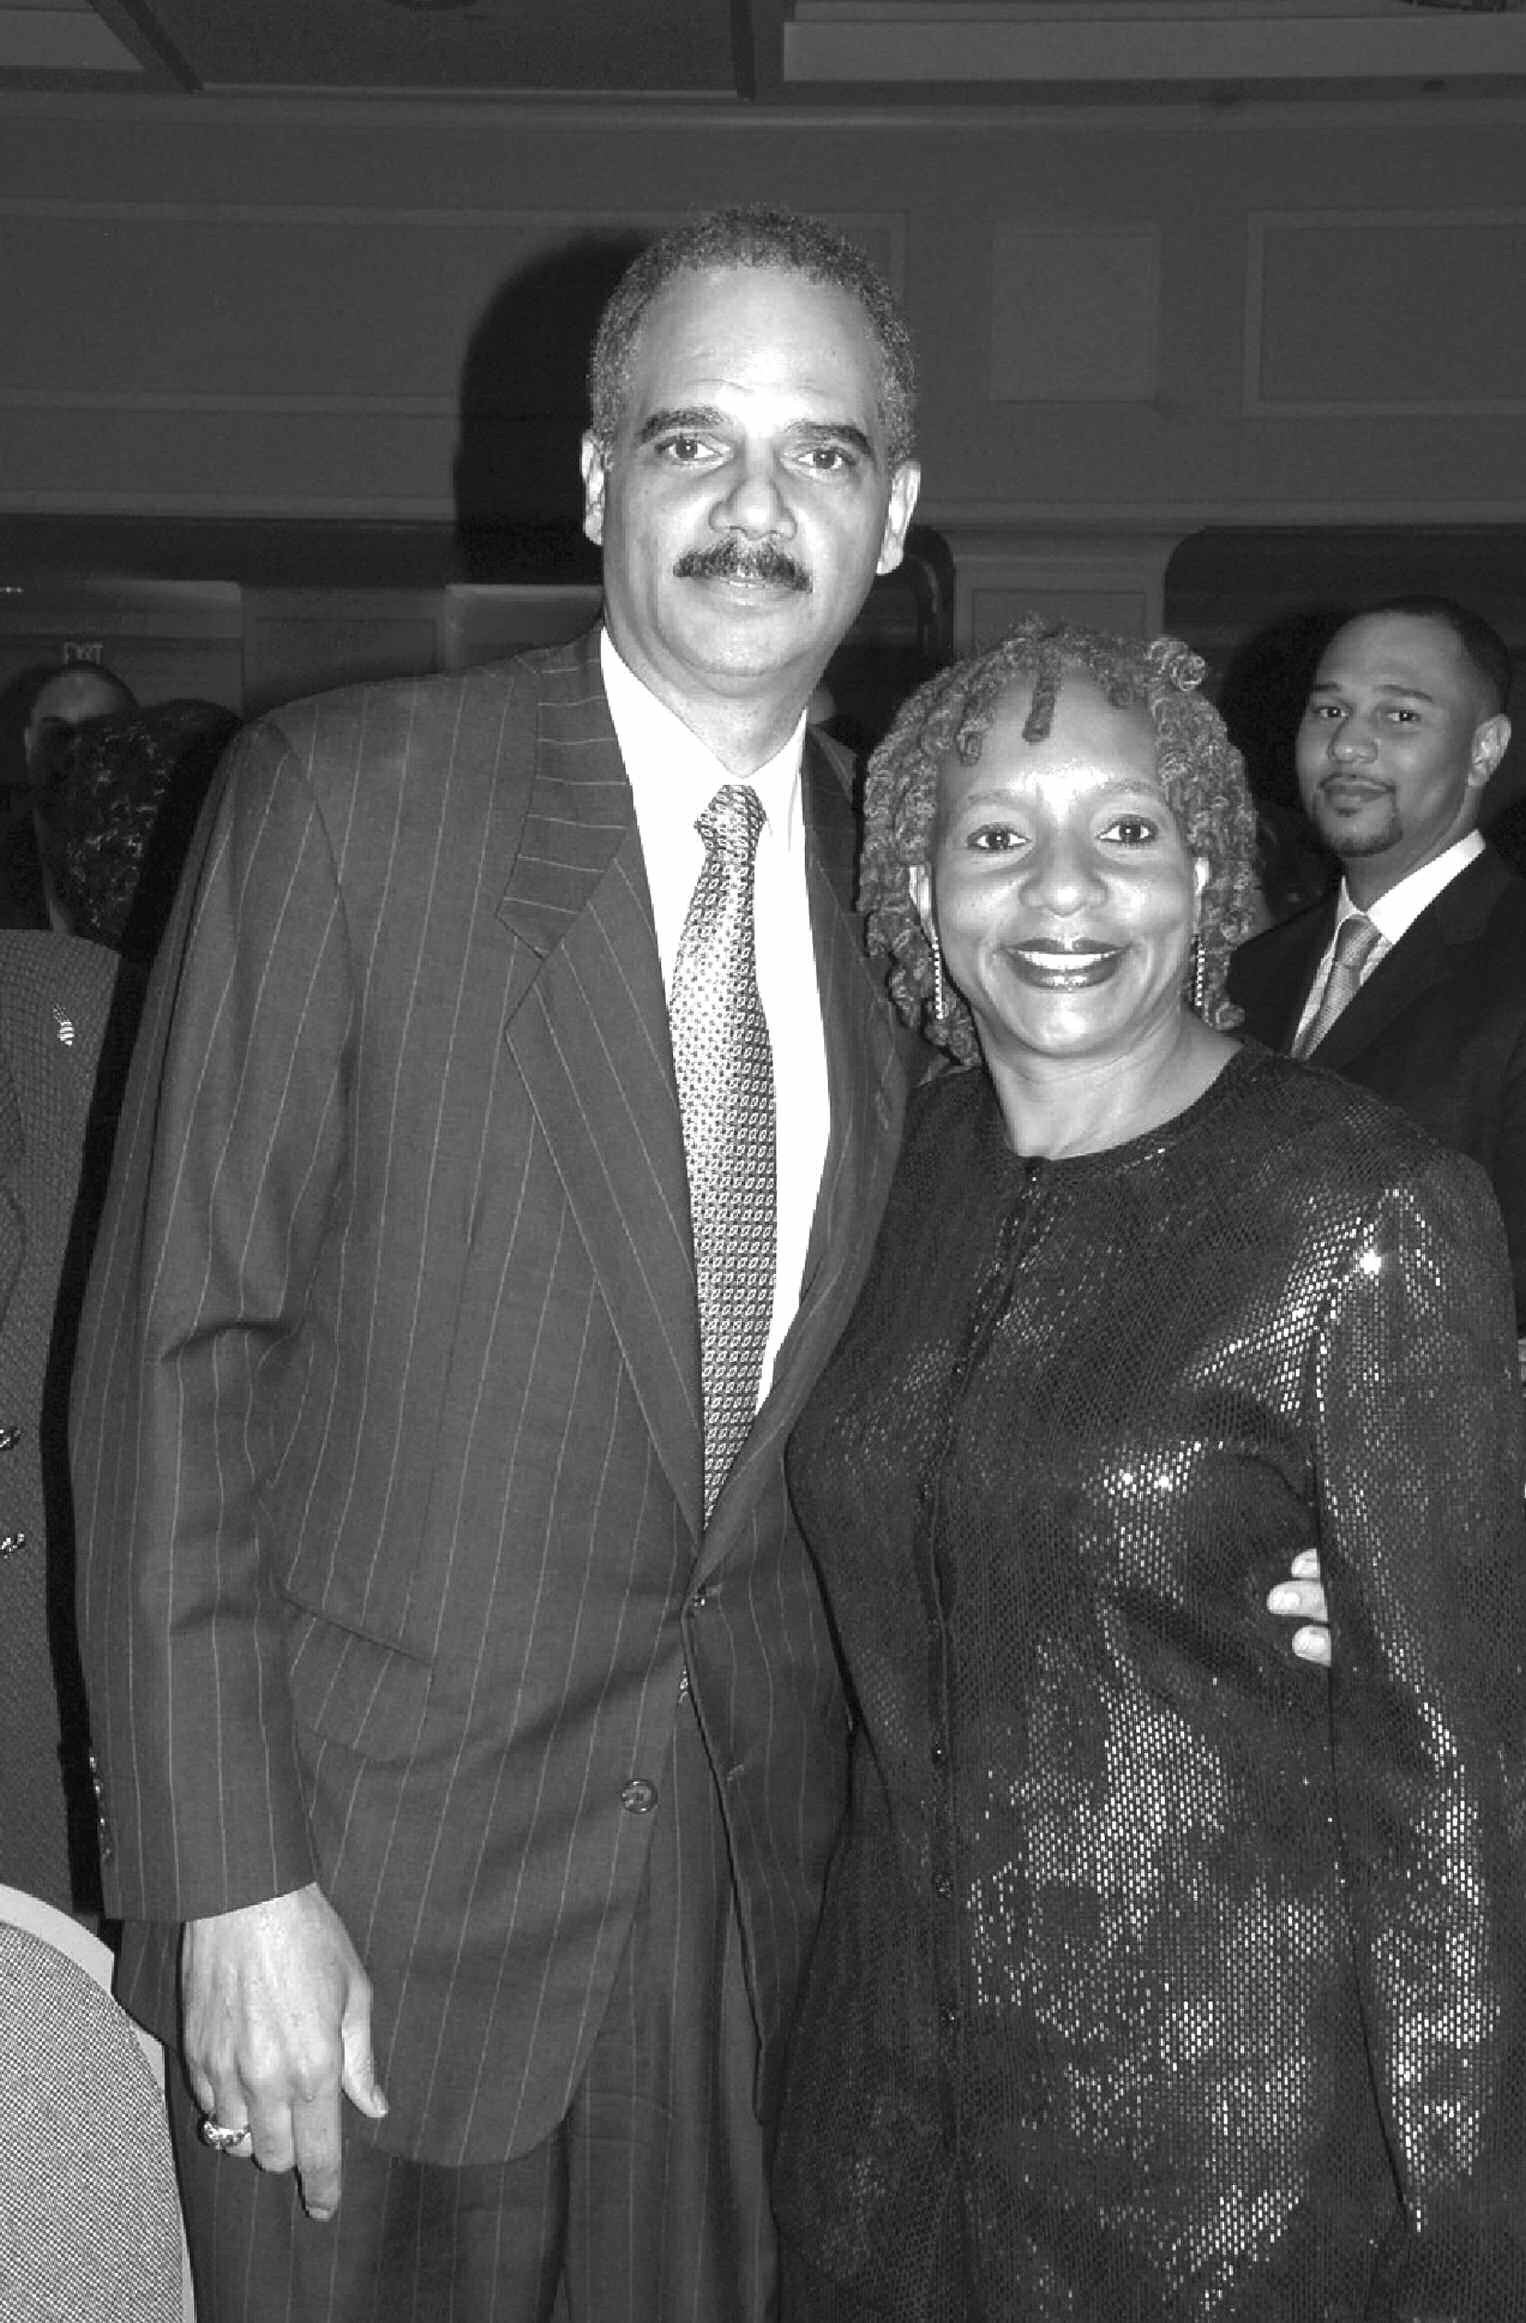 The Honorable Eric Holder, Jr., (left) U.S. Attorney General (left) and Mavis T. Thompson (right), President of the National Bar Association. (Photo by Roy Lewis)